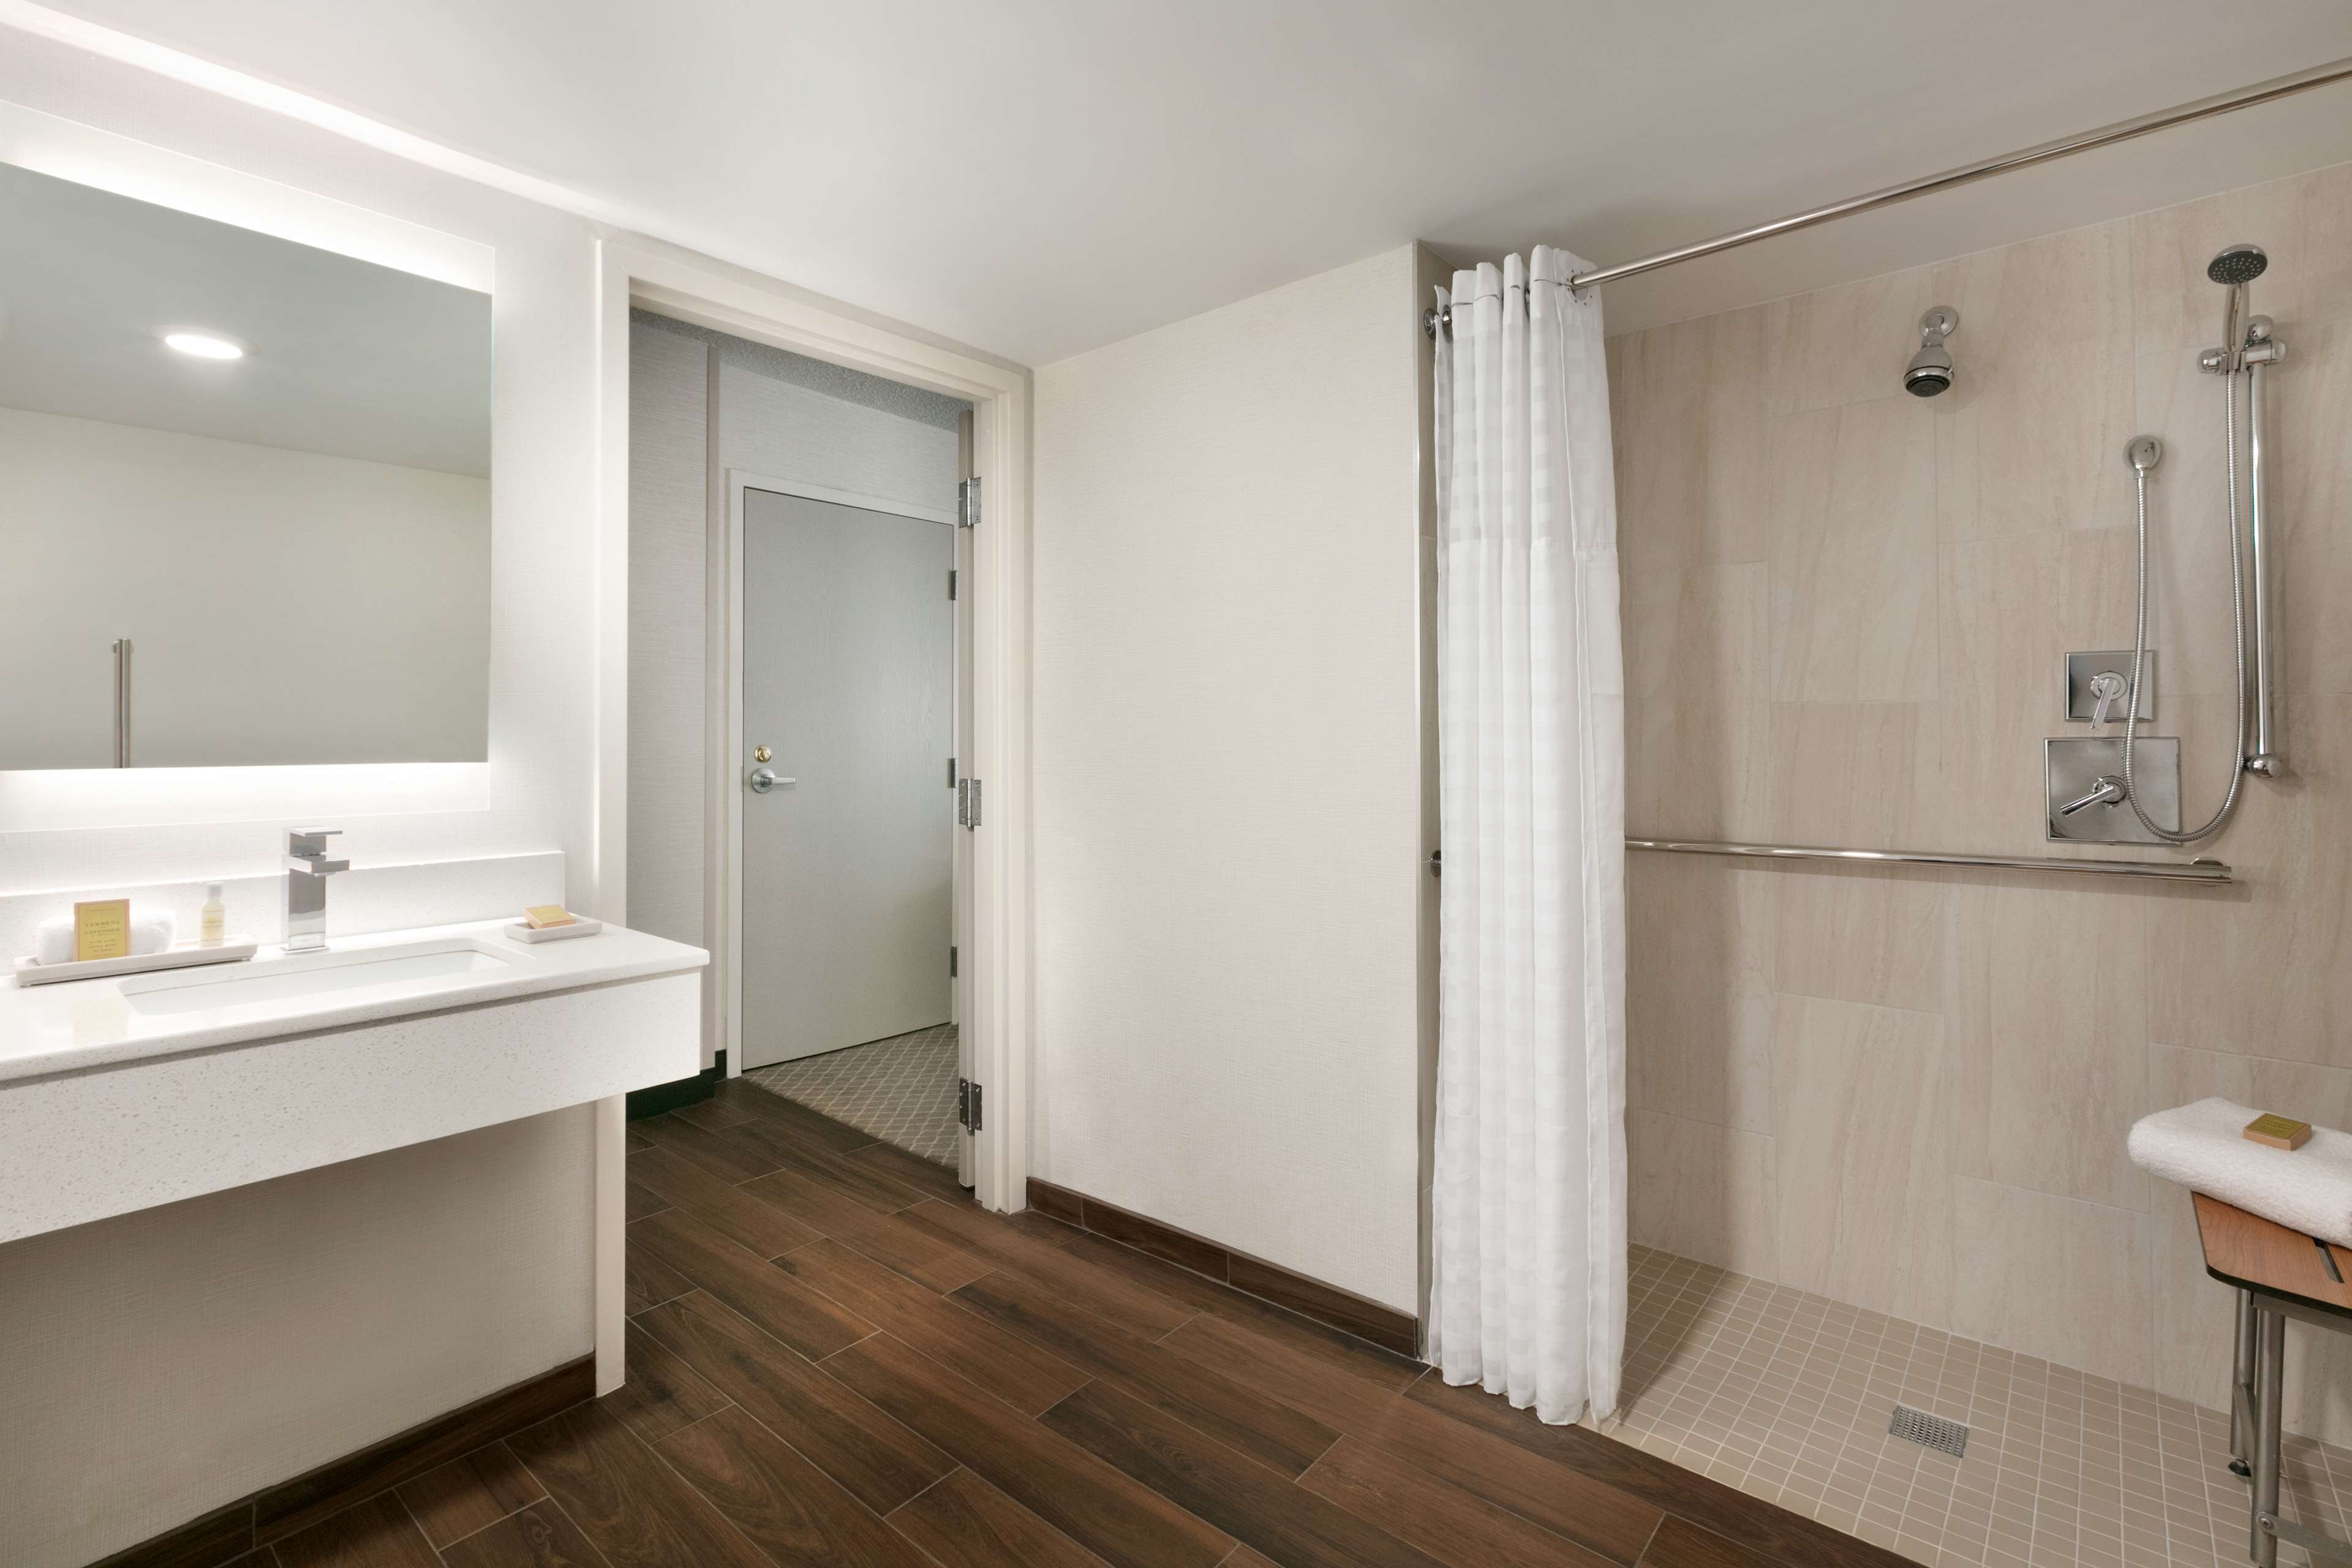 DoubleTree by Hilton McLean Tysons image 15